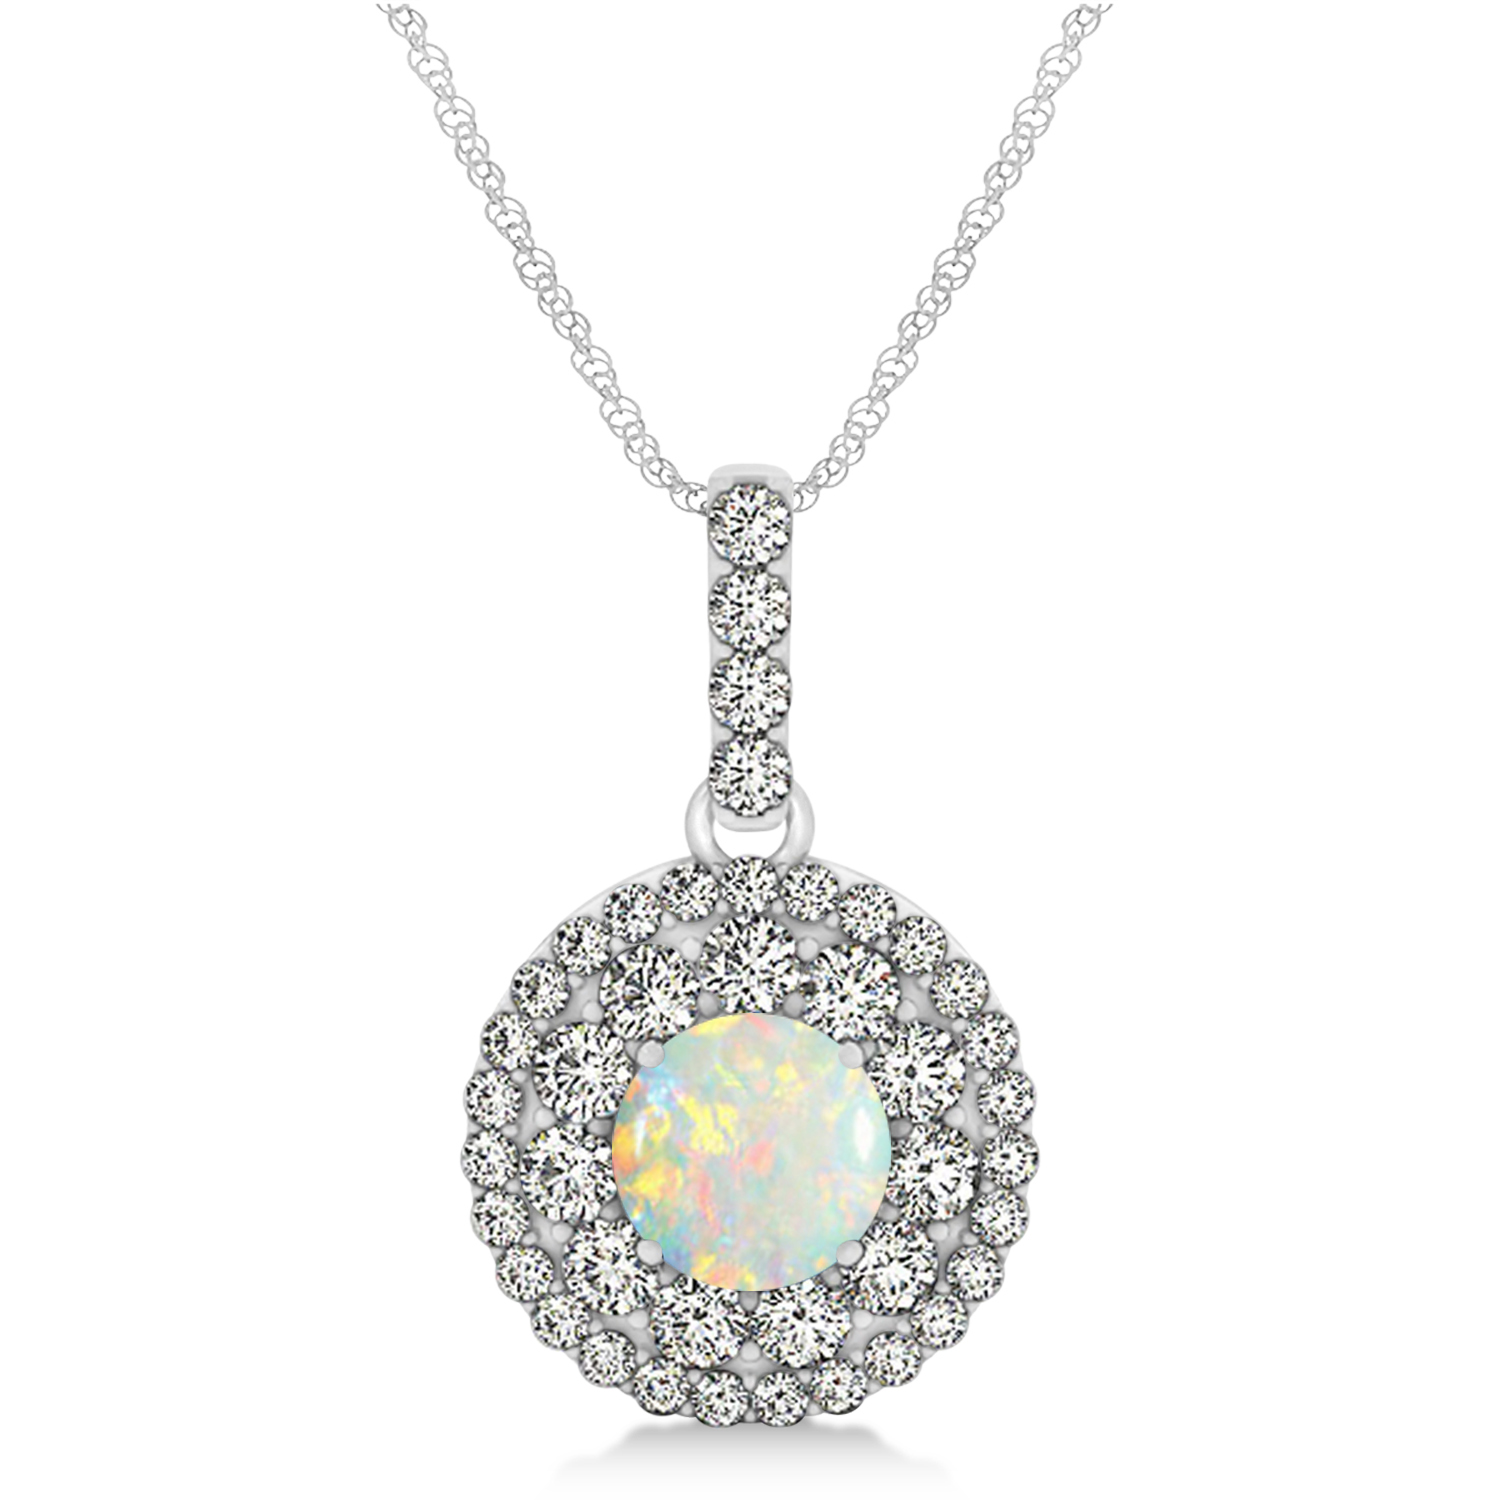 Round Double Halo Diamond & Opal Pendant 14k White Gold 1.09ct